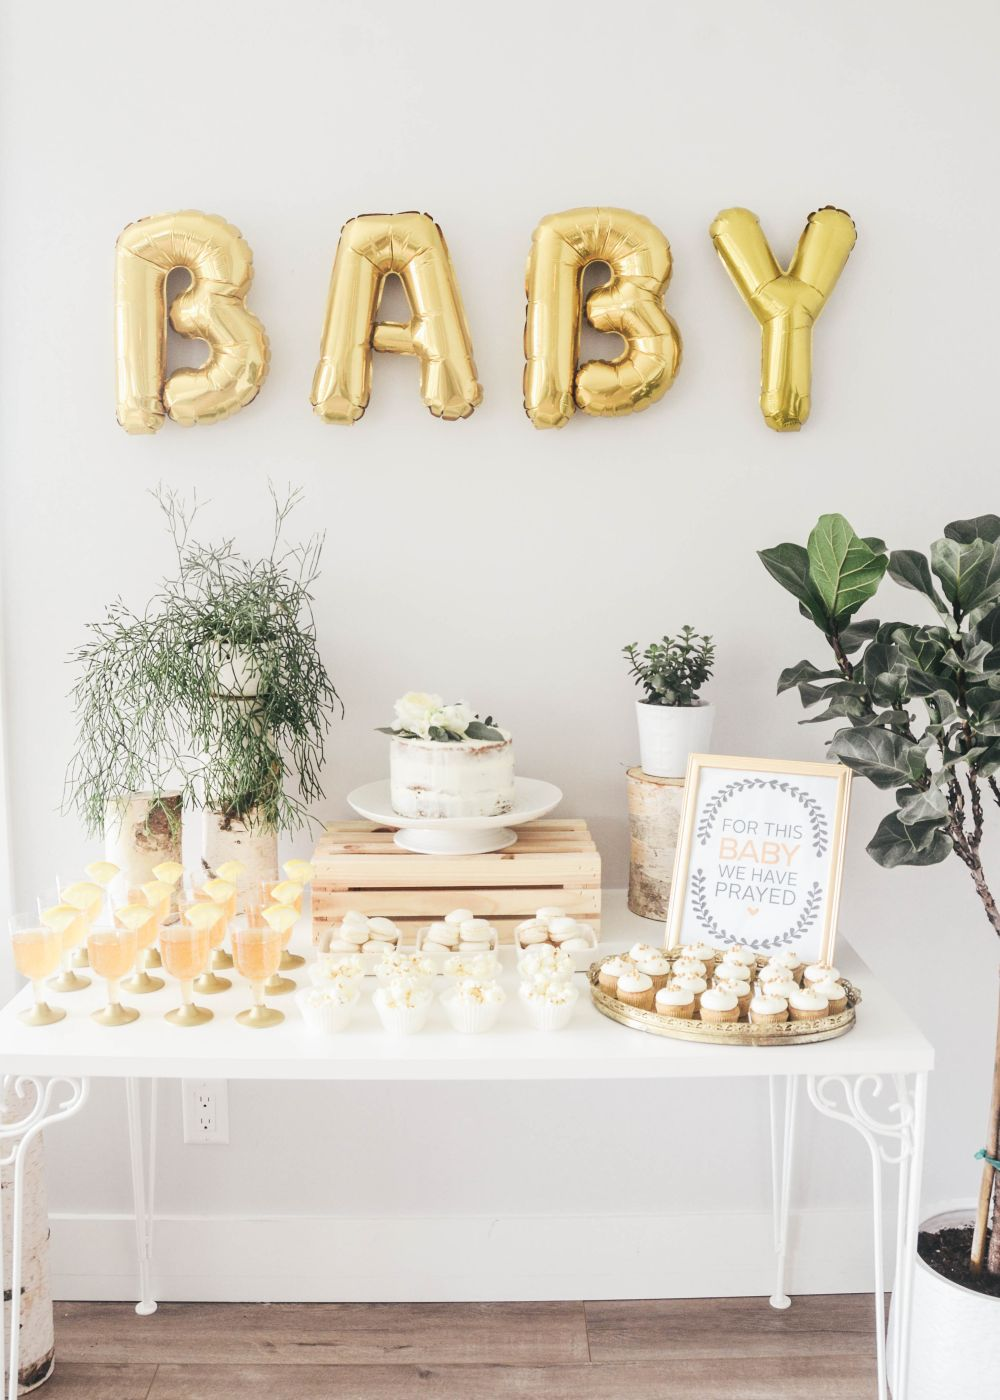 15 Best Baby Shower D Cor Ideas For A Memorable Celebration